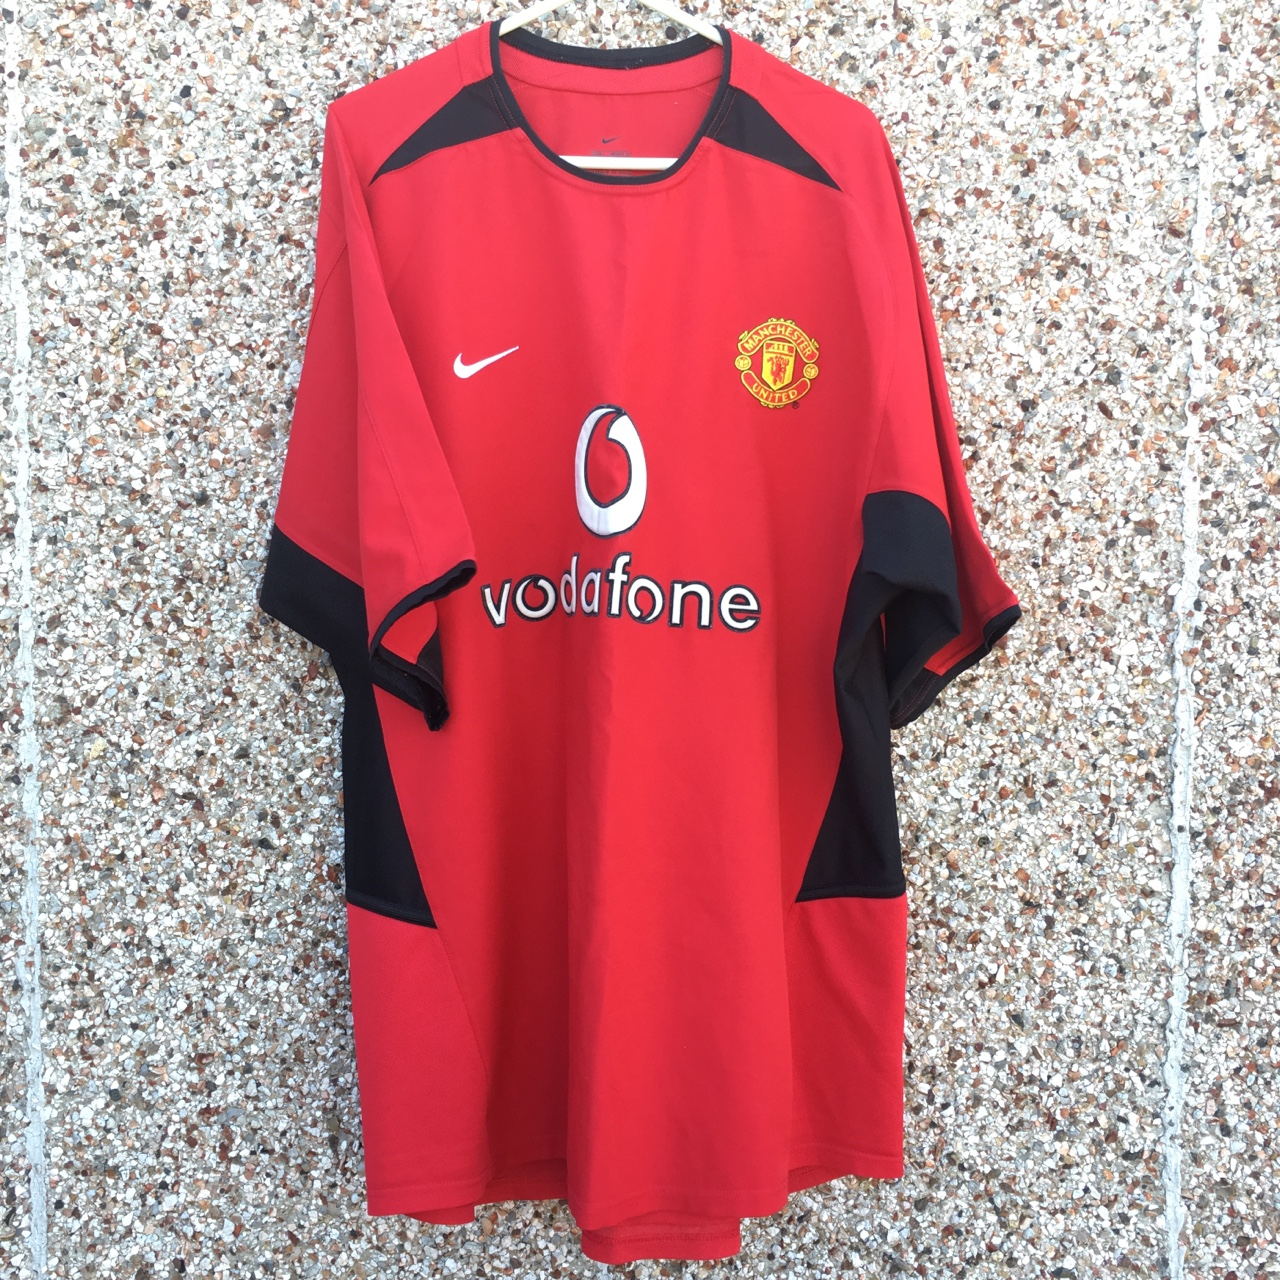 info for 22189 a61f0 Manchester United football shirt Adult large... - Depop